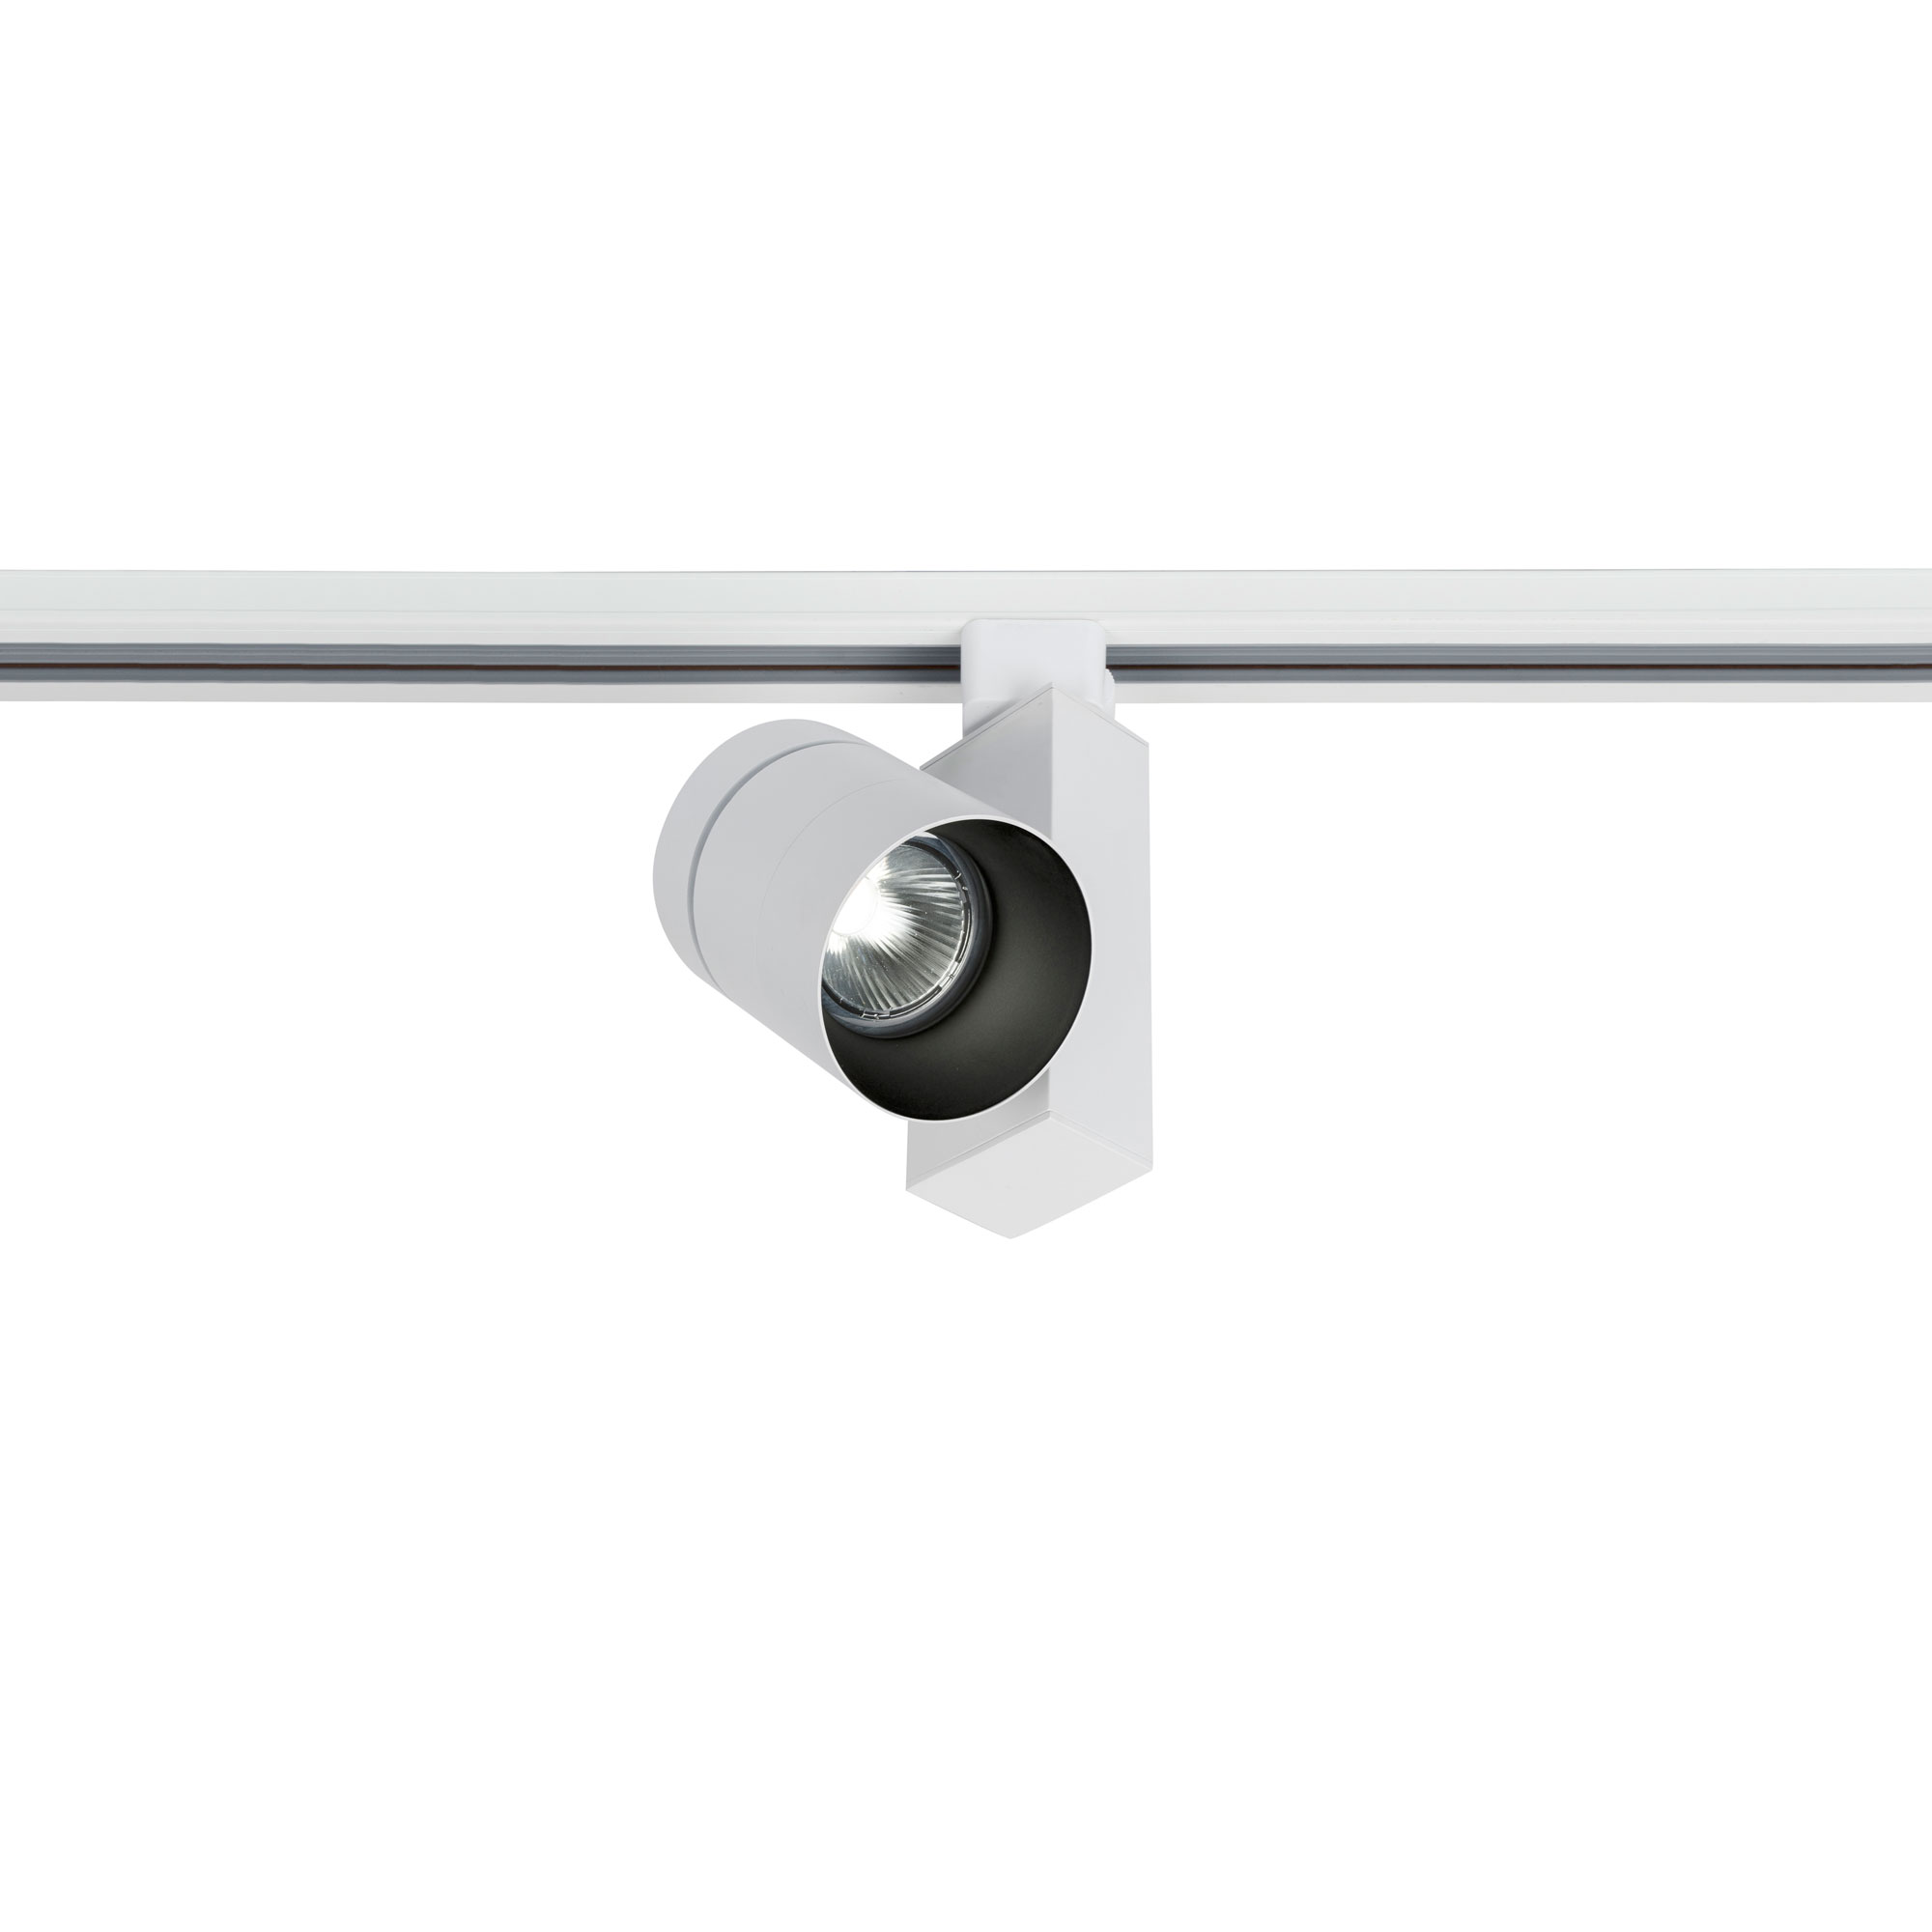 Juno track classic vertical spot 3 head by pureedge lighting tj juno track classic vertical spot 3 head by pureedge lighting tj cvs3 21w 30k wh aloadofball Images